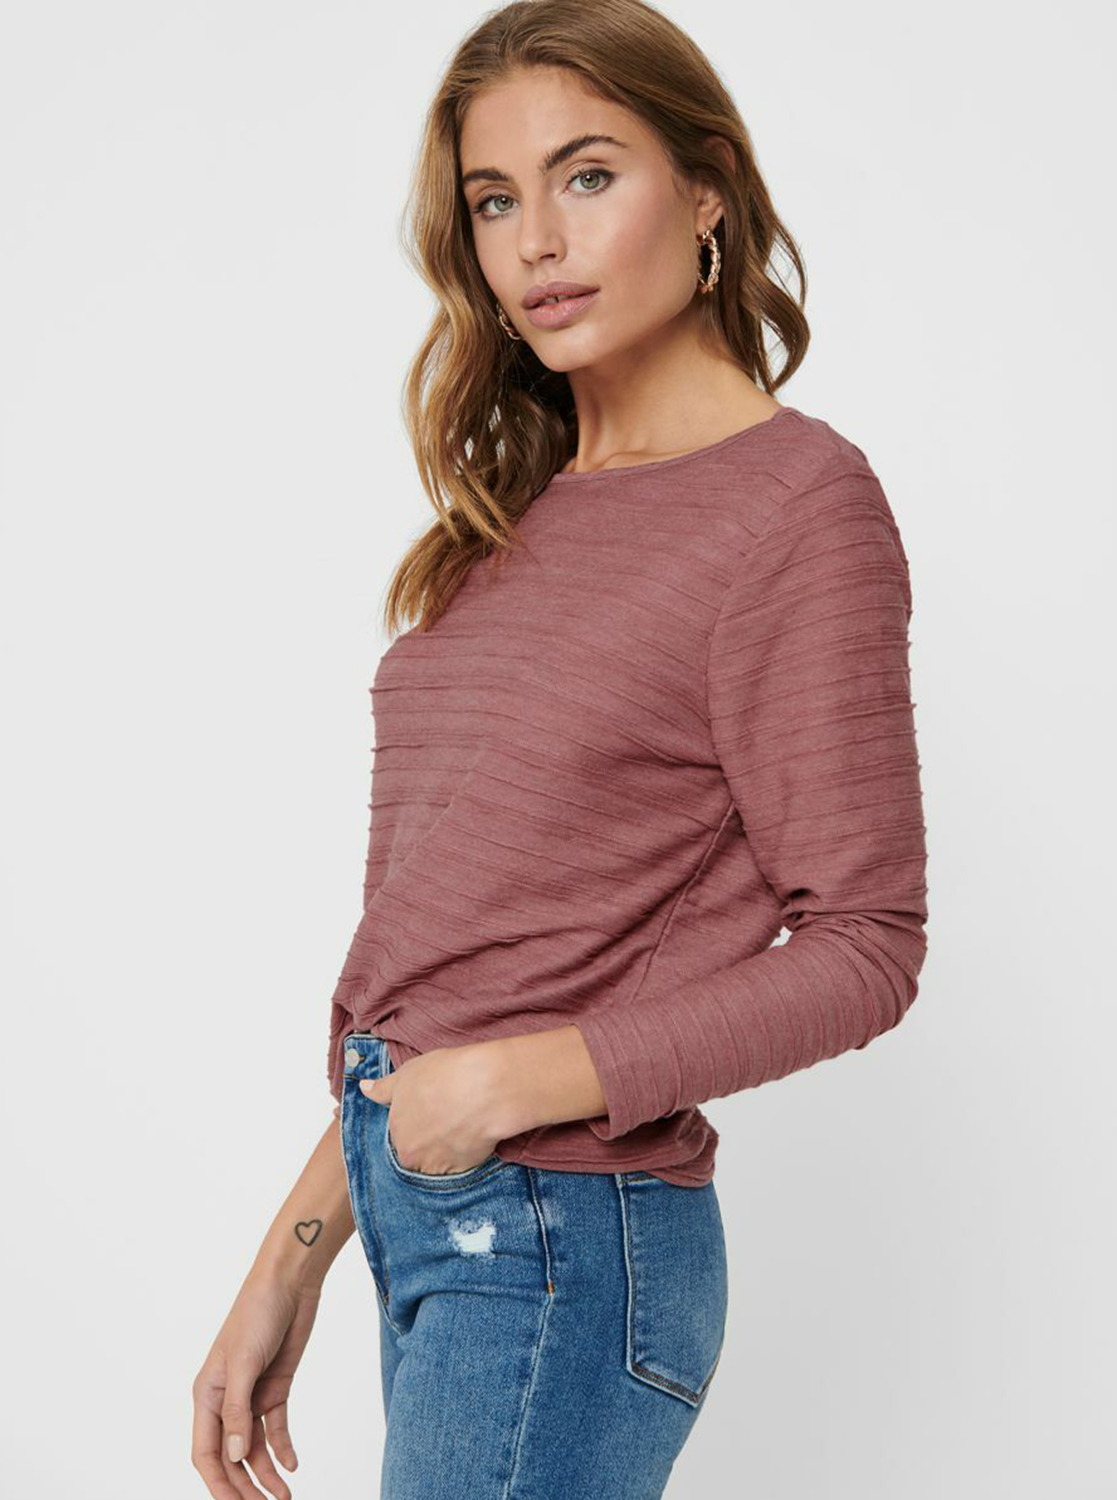 Pink T-shirt with a cut on the back ONLY